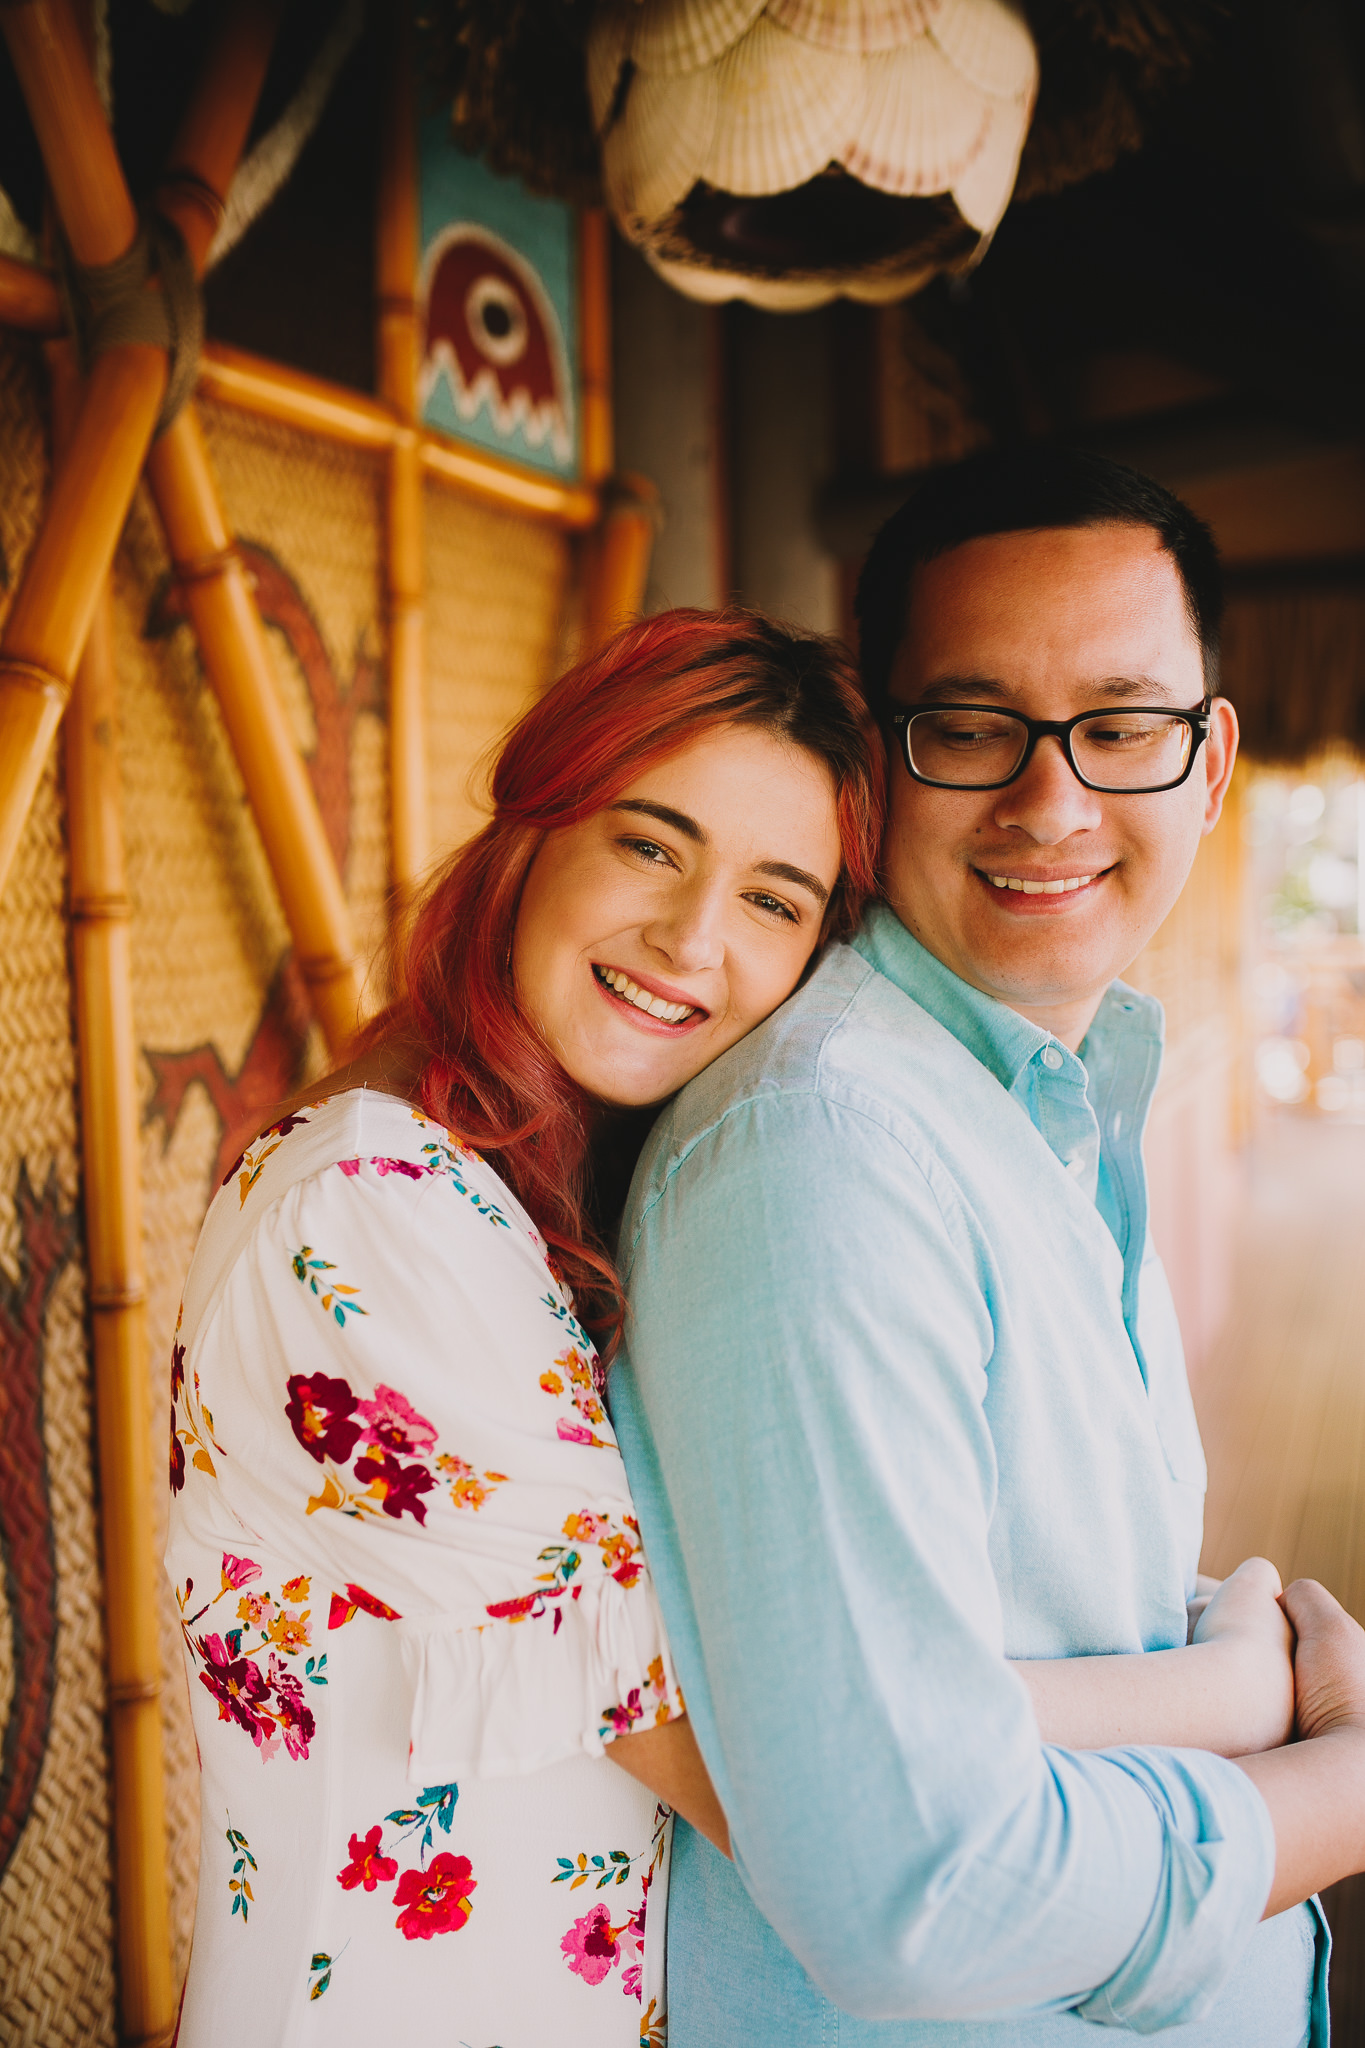 Archer Inspired Photography Disneyland Engagement Wedding Session Southern California Kayla and Kevin Lifestyle Documentary-60.jpg